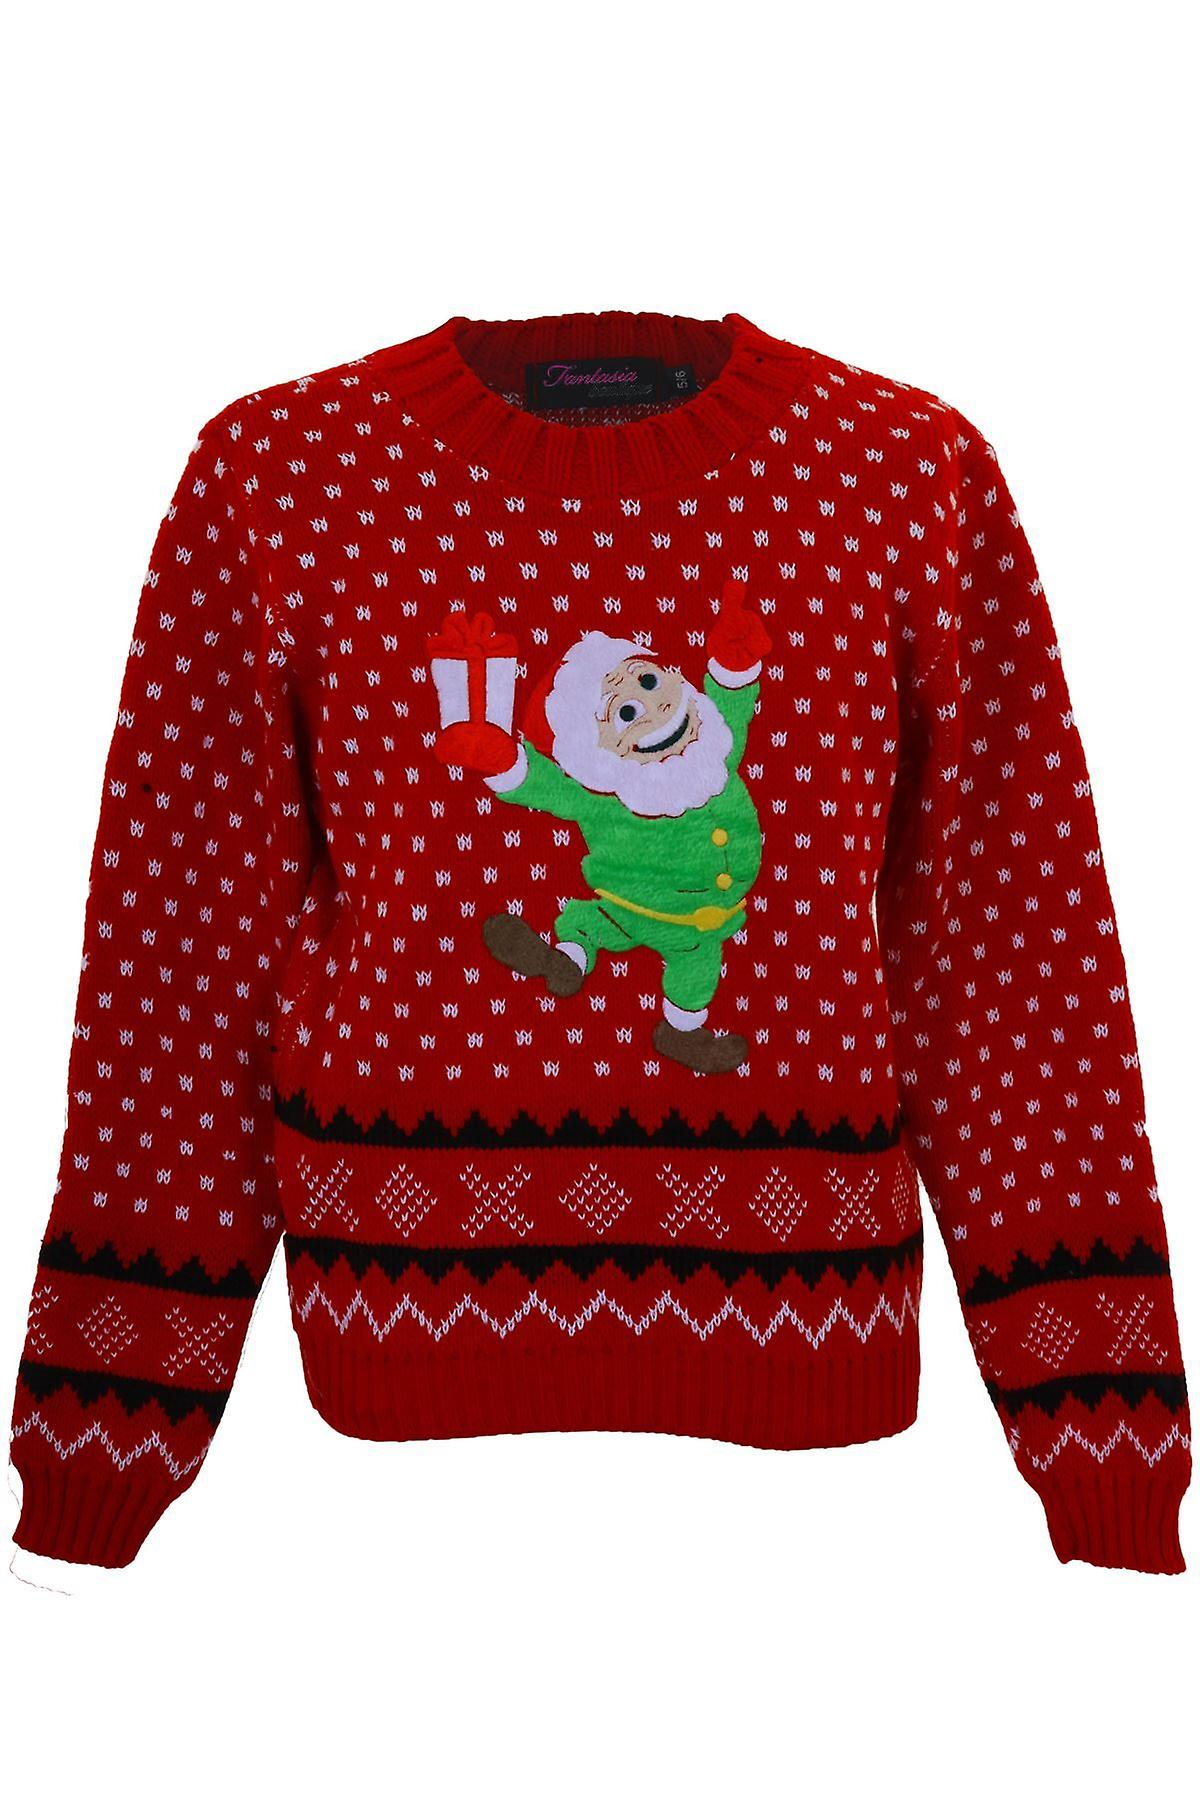 Children's Knitted XMAS Christmas Festive Santa Snow Girls Aztec Sweater Jumper